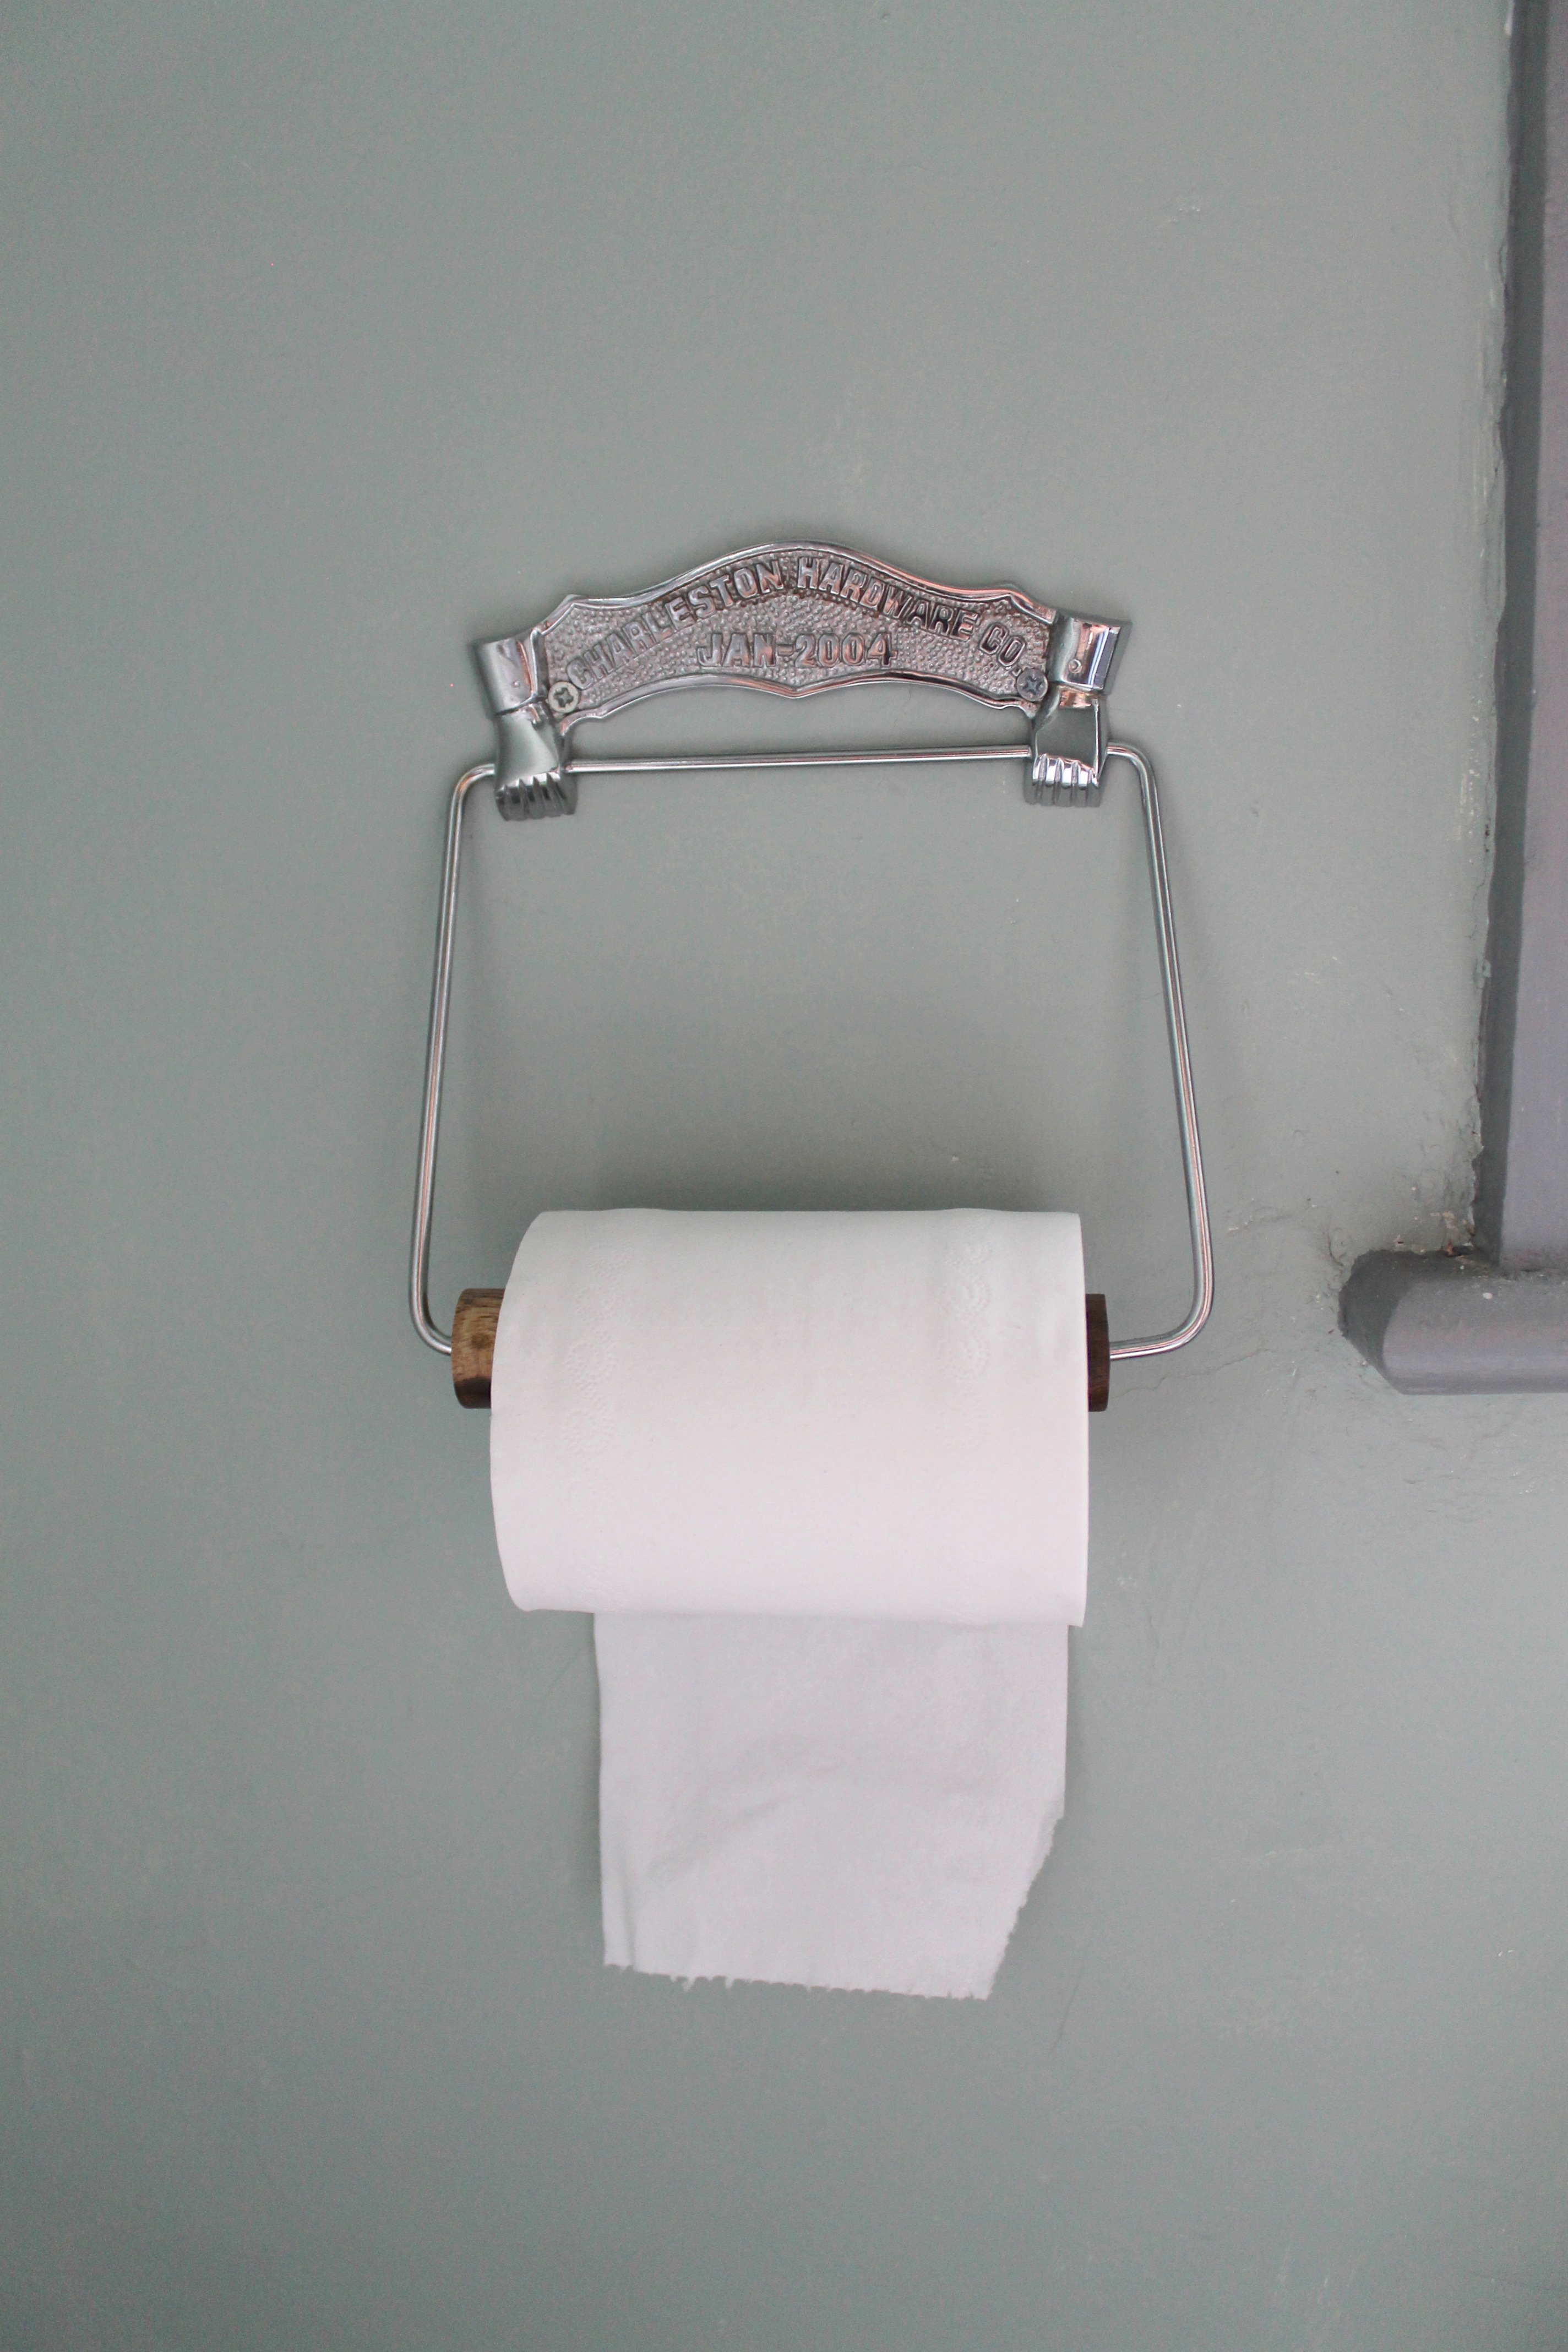 Toilet roll holder stylist s own by joanna thornhill